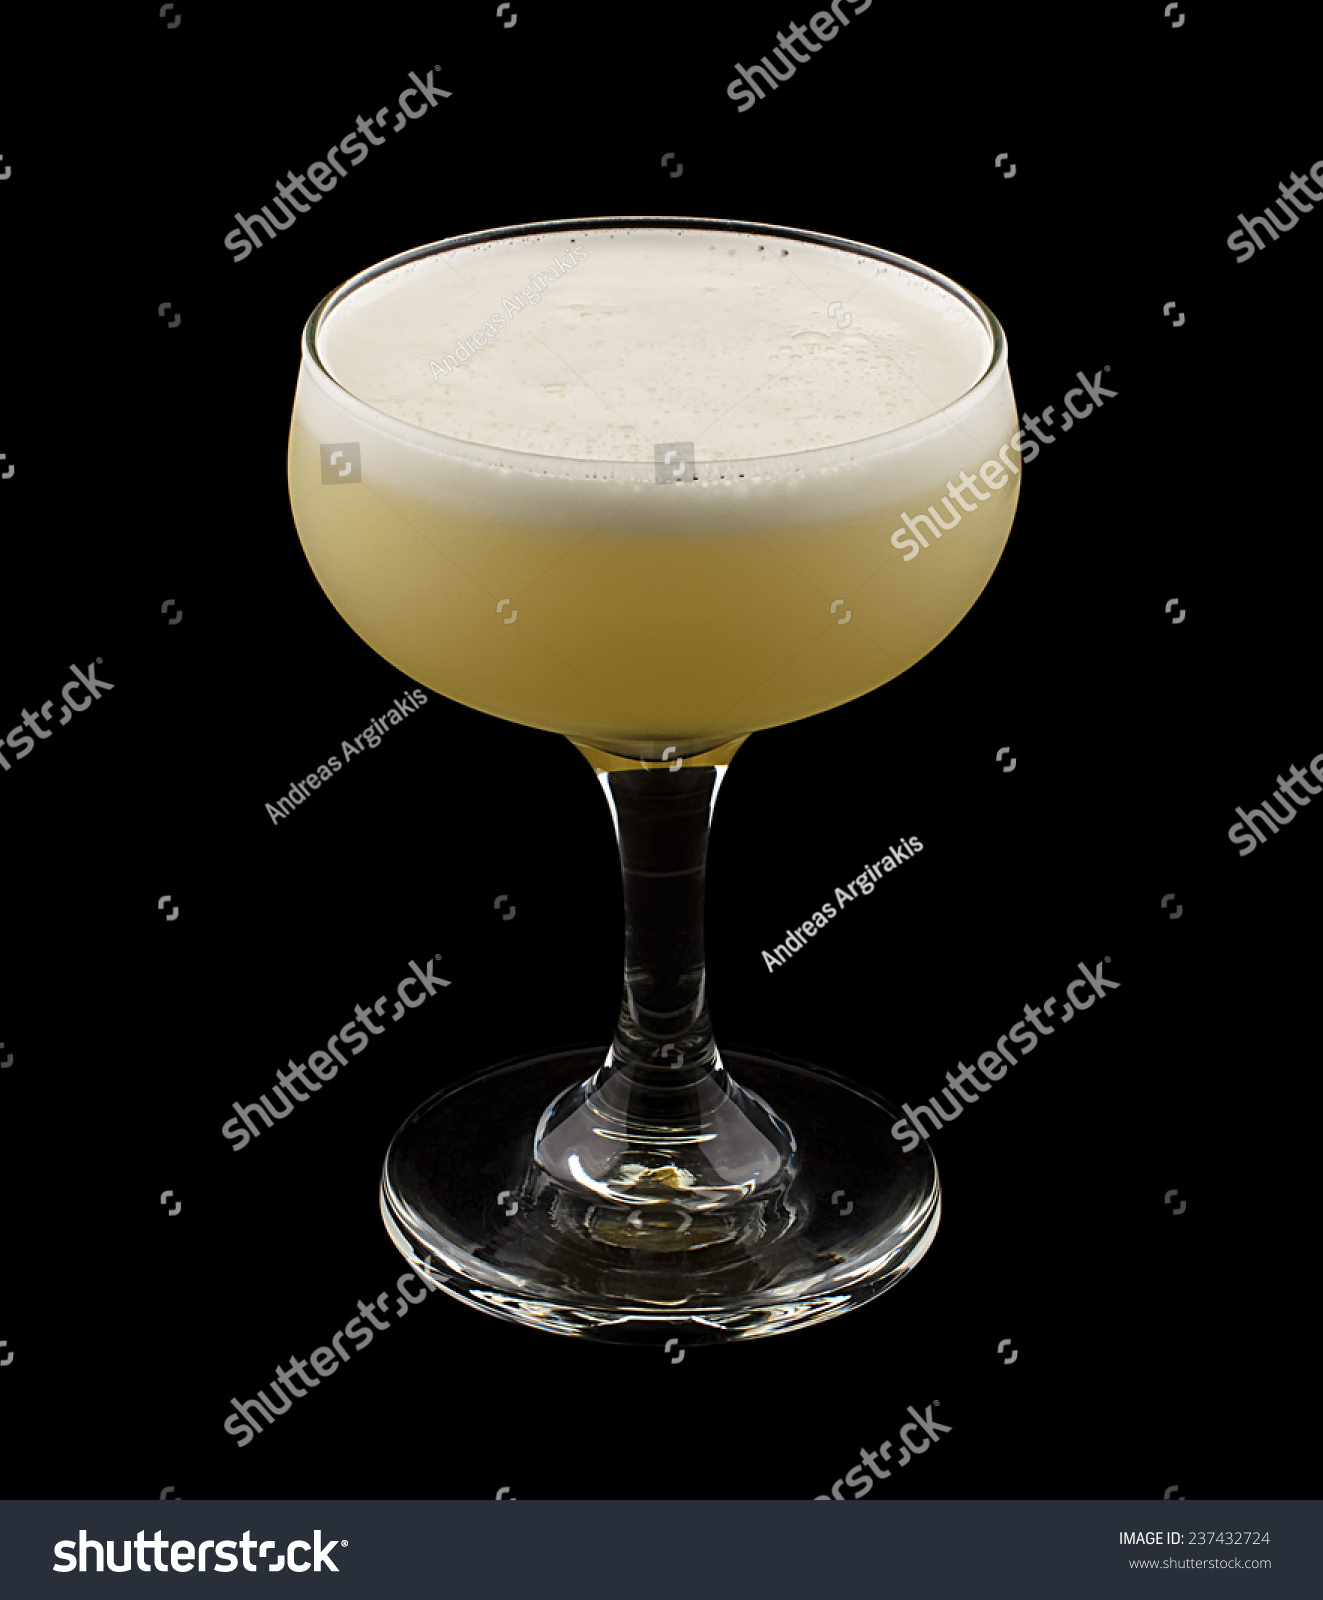 visitor is a cocktail that contains gin creme de banana cointreau egg white and orange juice. Black Bedroom Furniture Sets. Home Design Ideas